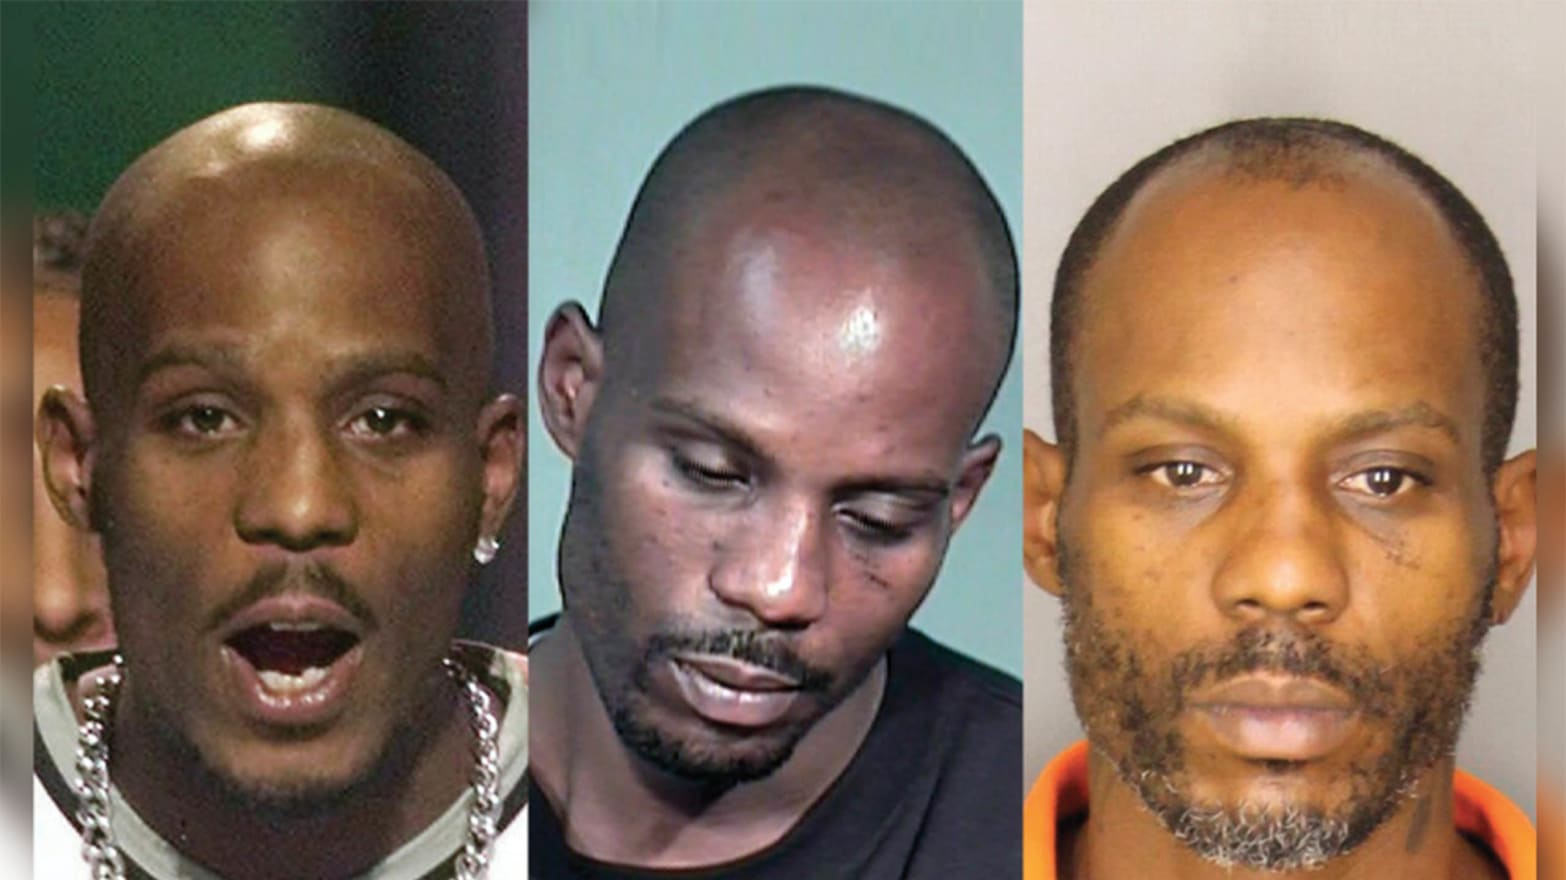 Drugs Greed And Dead Boy >> Dmx S Downfall From Hip Hop King To The Brink Of Death